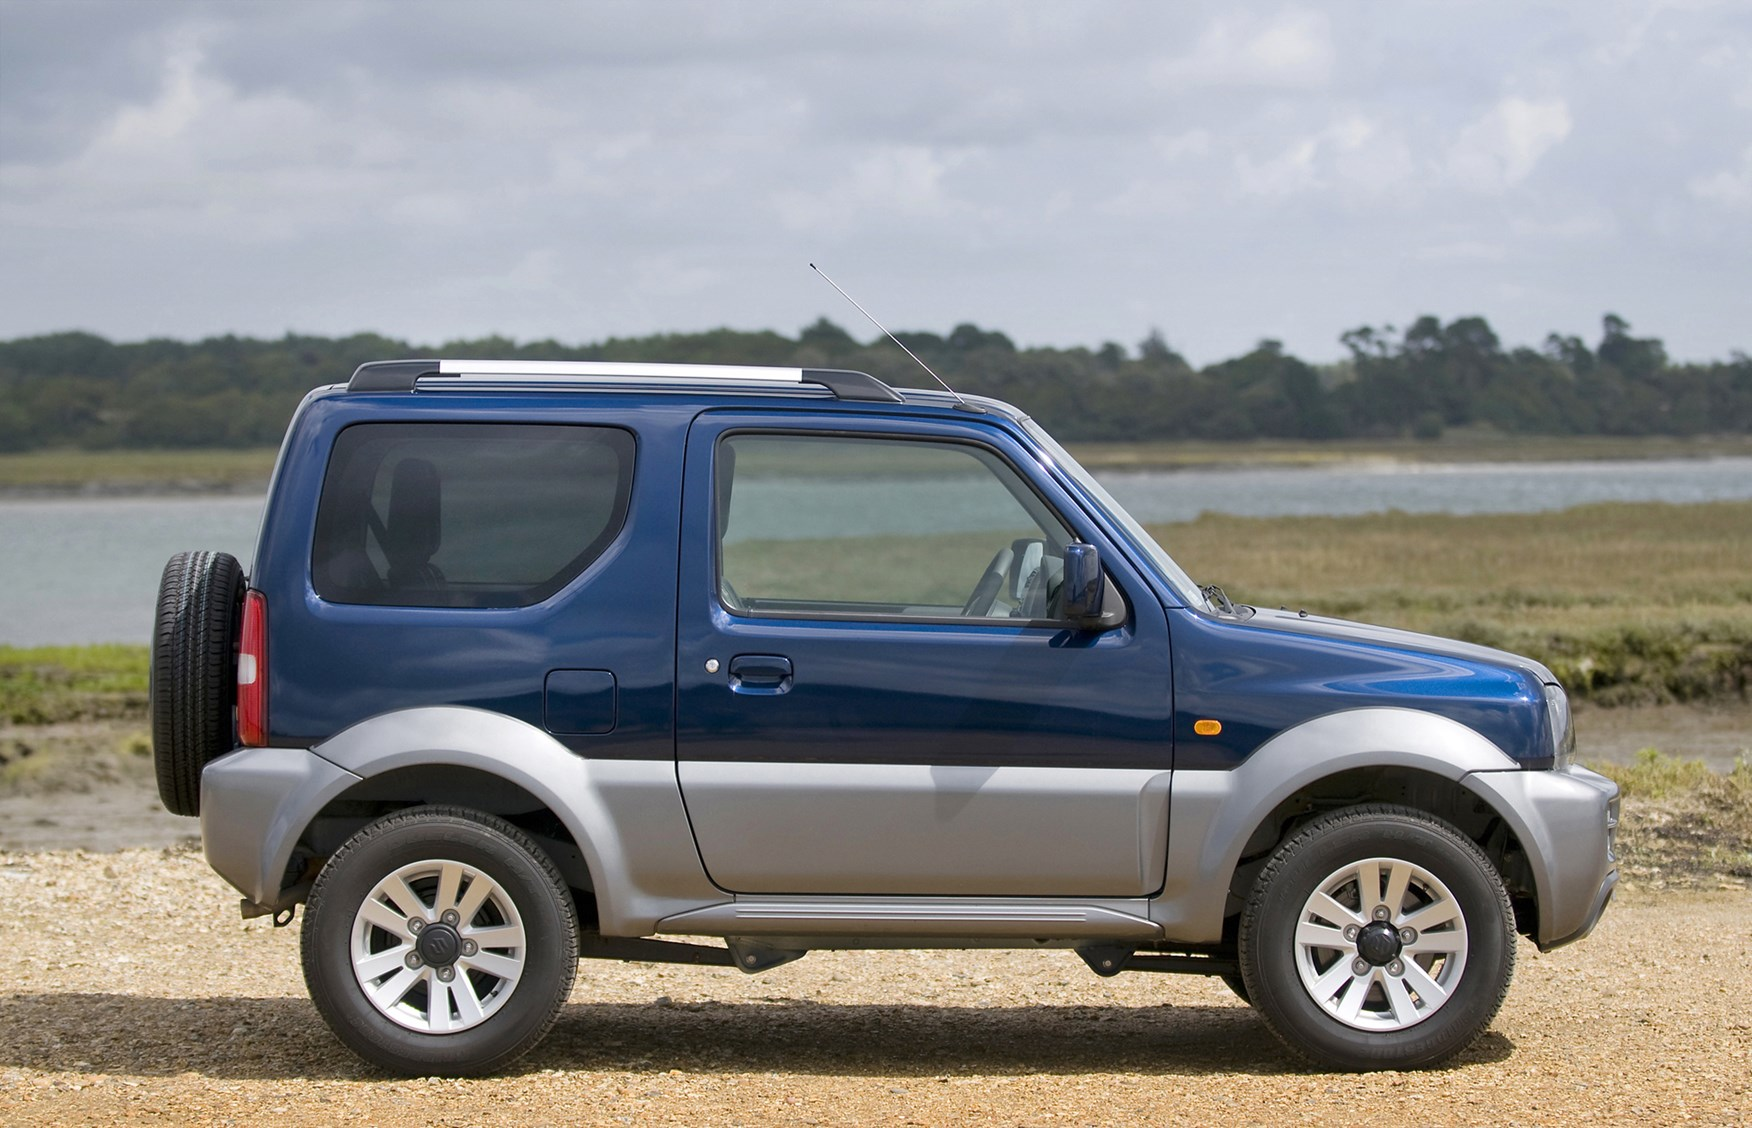 suzuki jimny estate review 1998 parkers. Black Bedroom Furniture Sets. Home Design Ideas